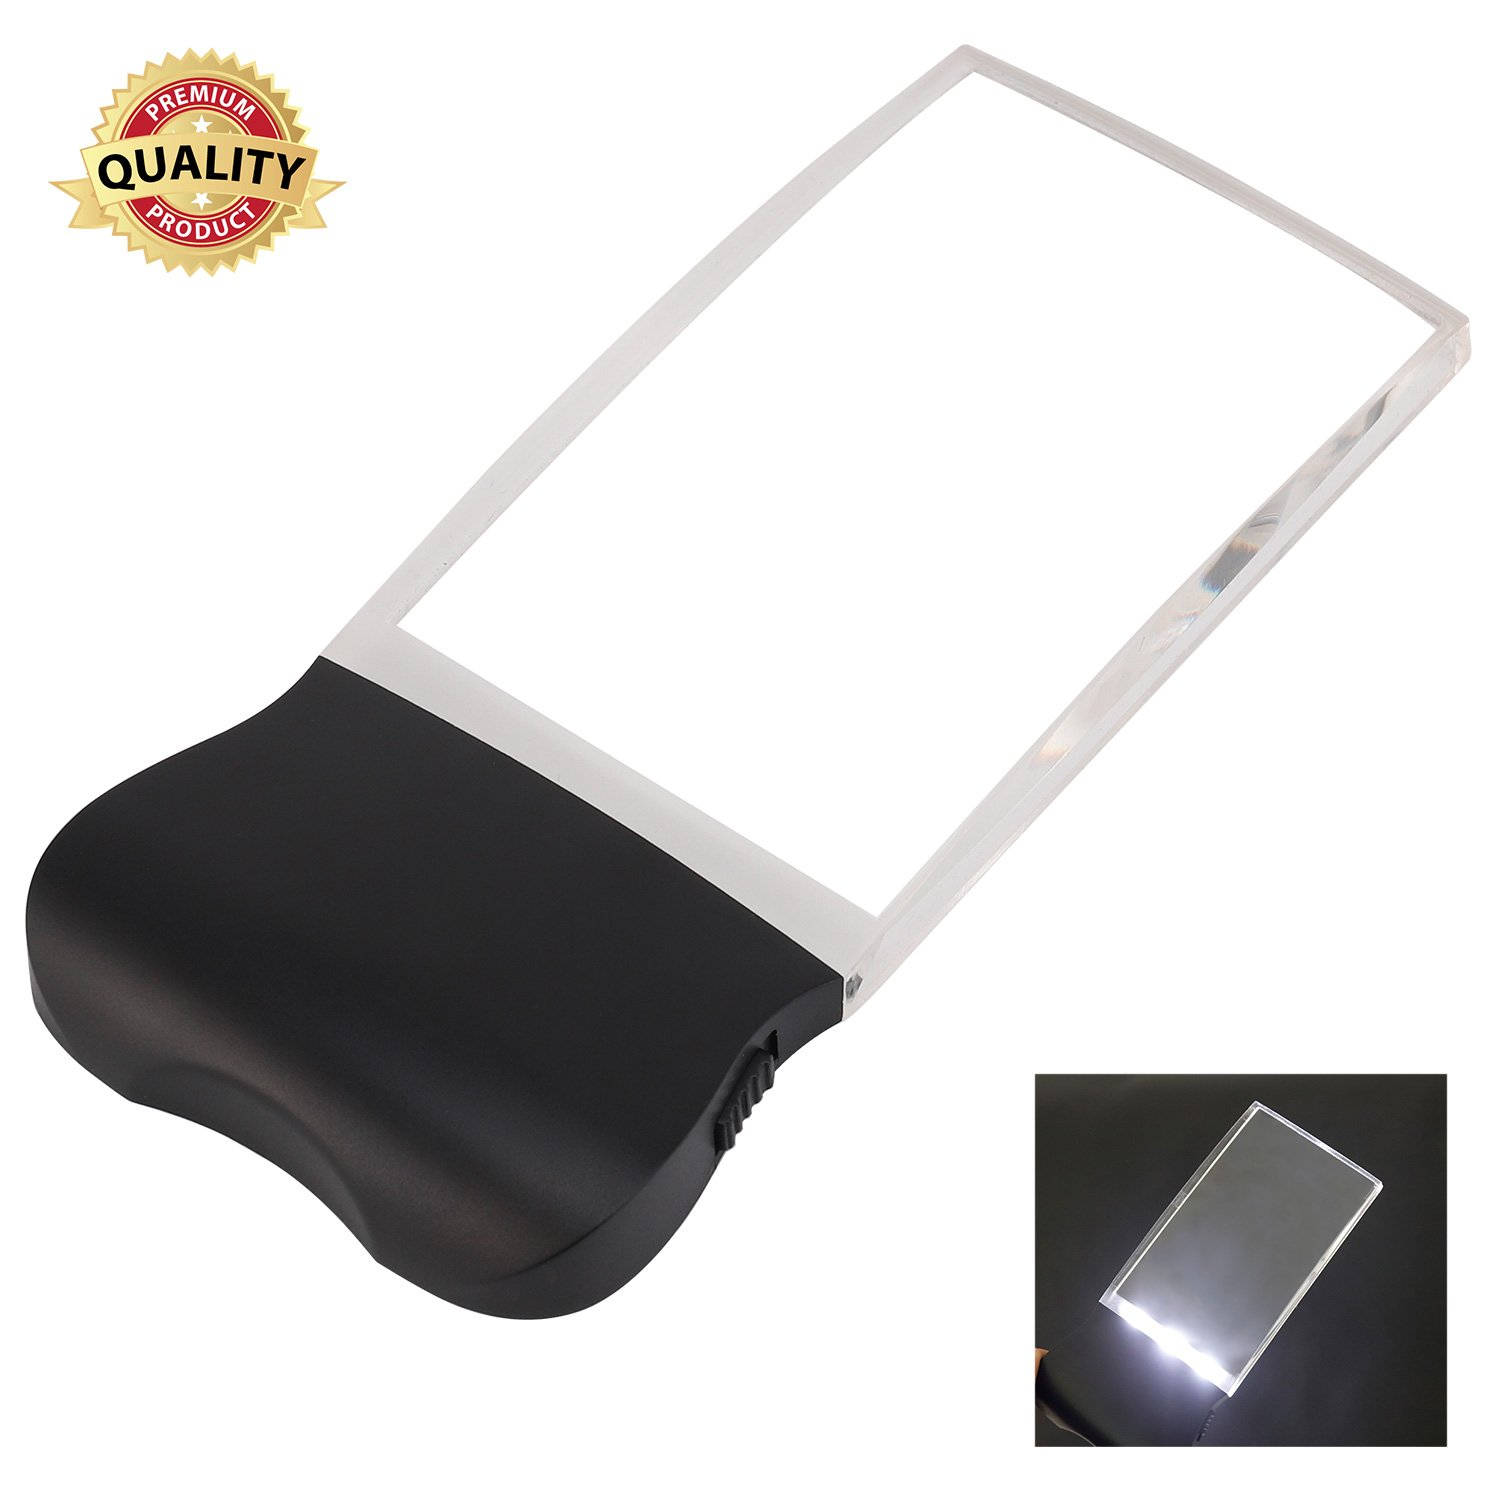 Magnifying Glass for Reading, Magnifying Glass with Light, Handheld Rectangular LED Light 2X Magnifier, Rimless Distortion-Free Magnifier Lens